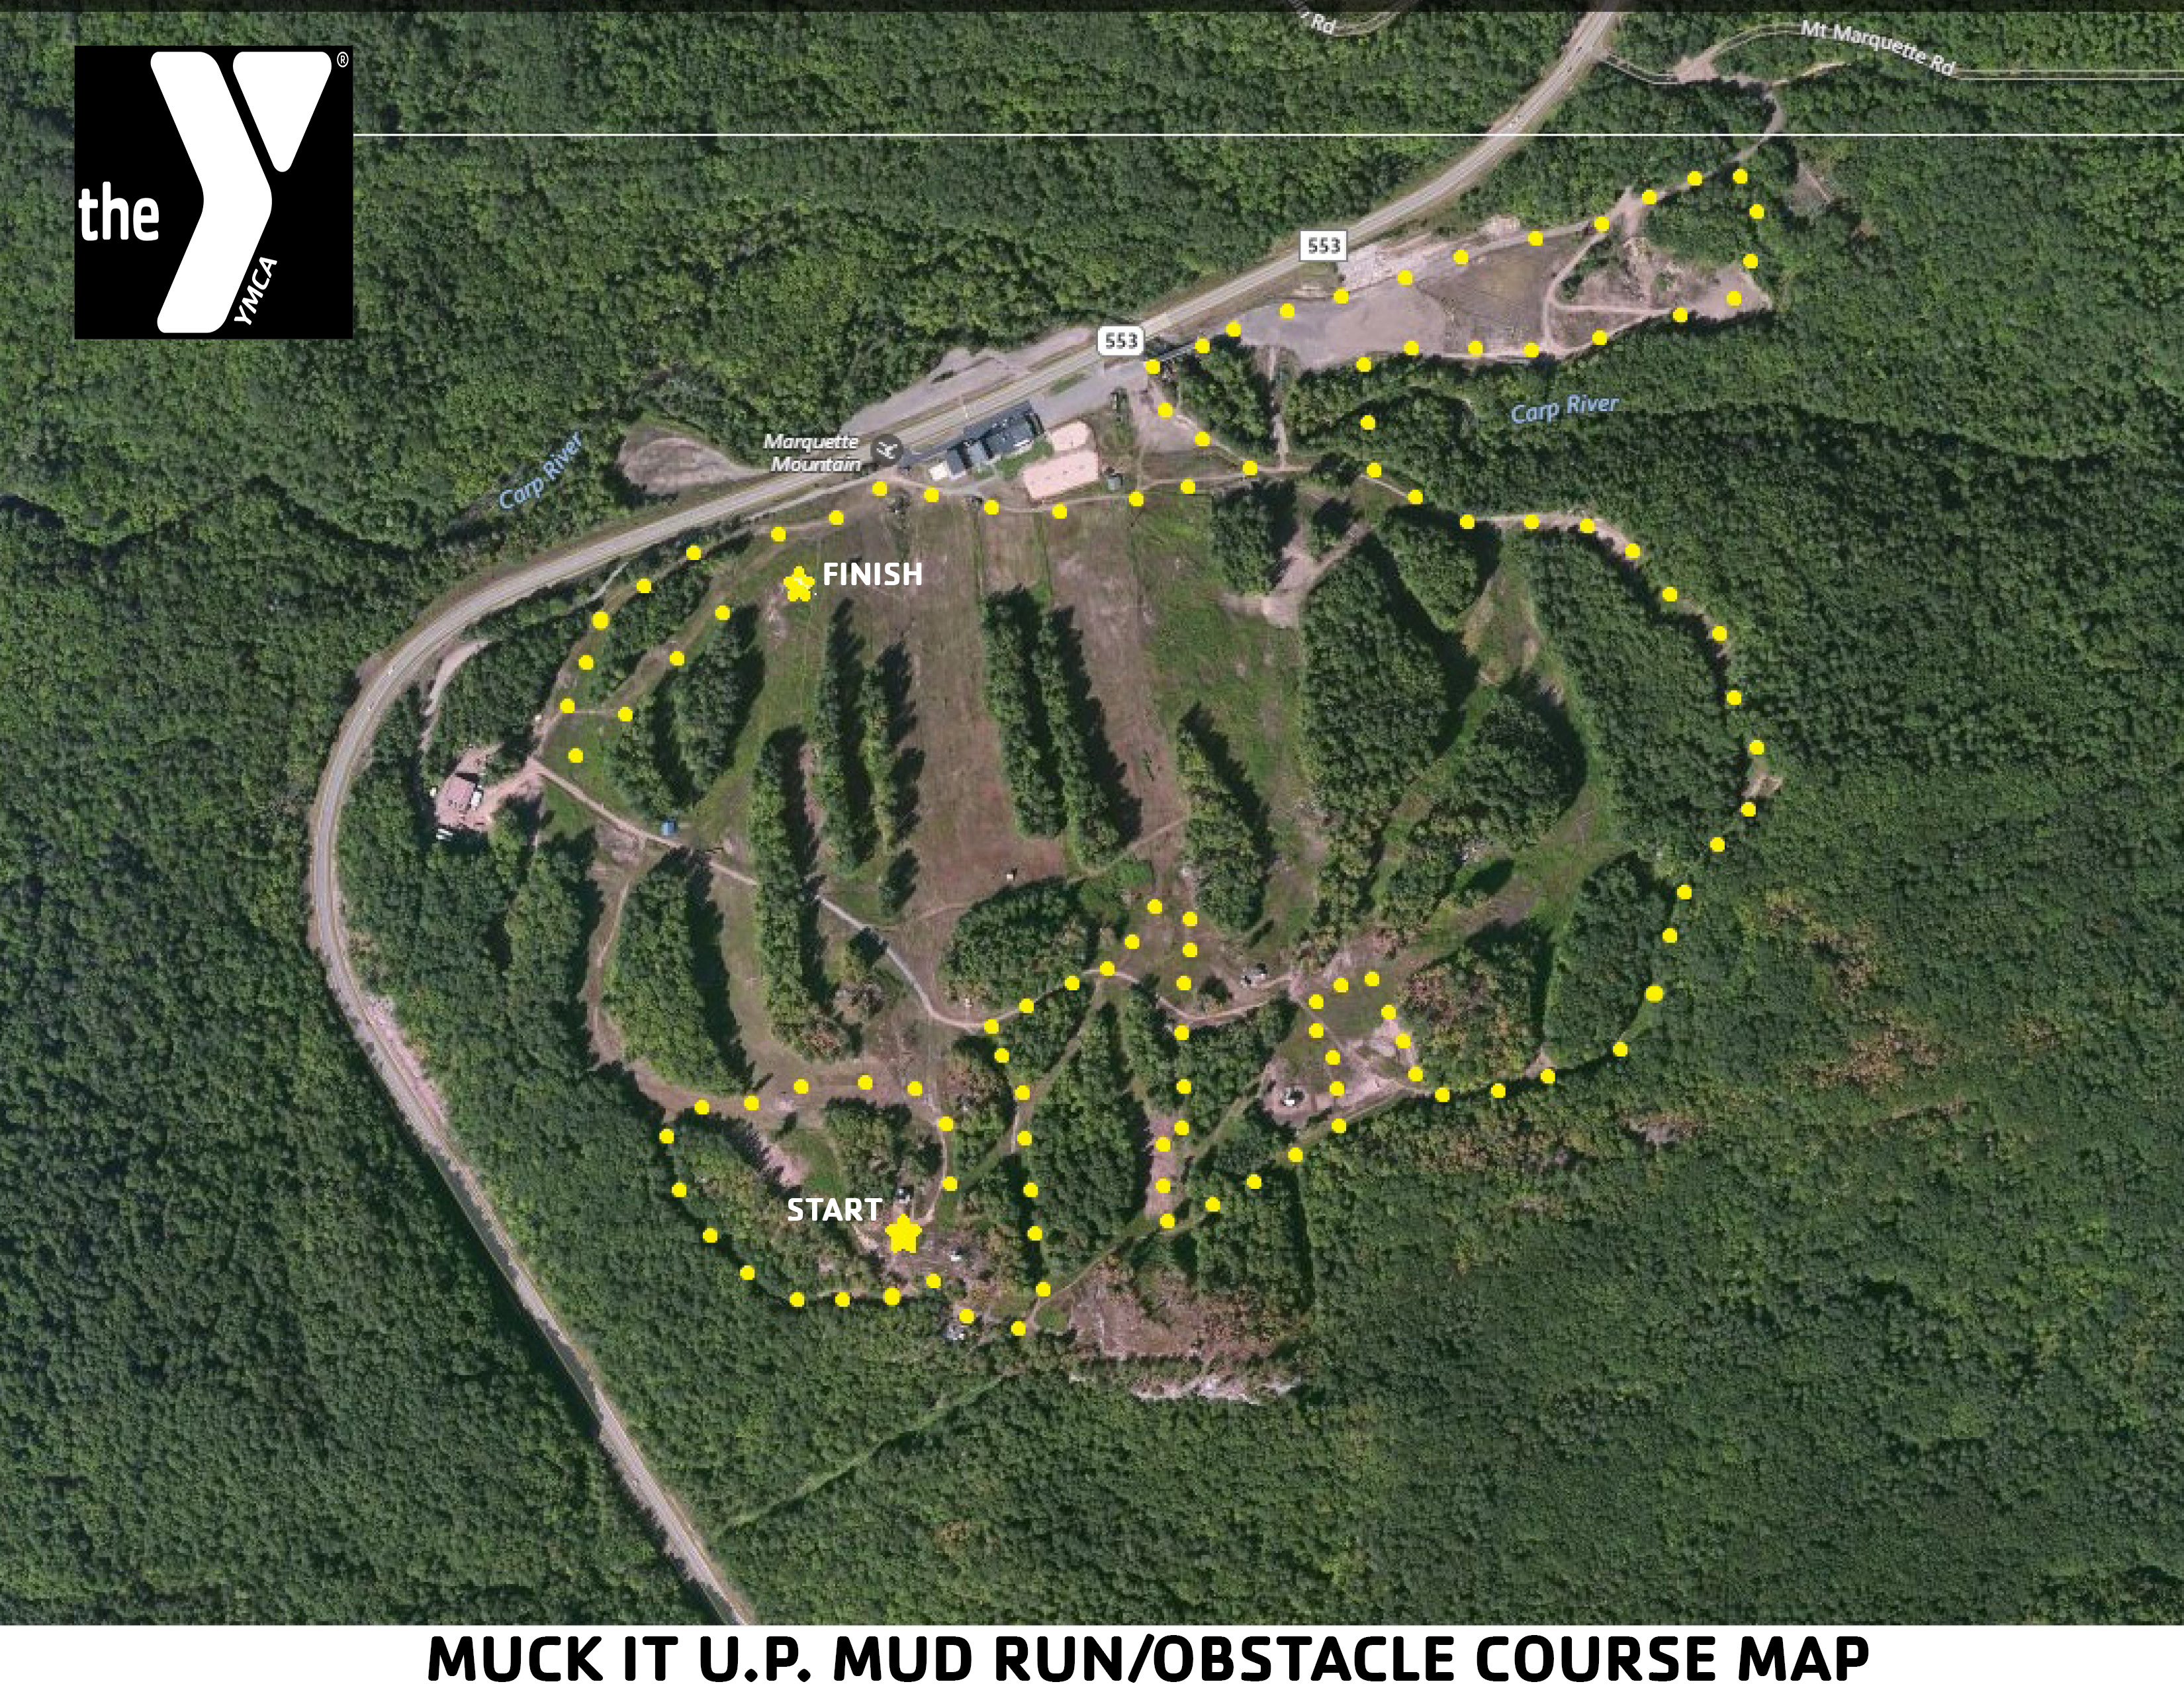 Michigans Upper Peninsula Events Event Calendar UP UP Travel - Us nationals houghton 2015 course map